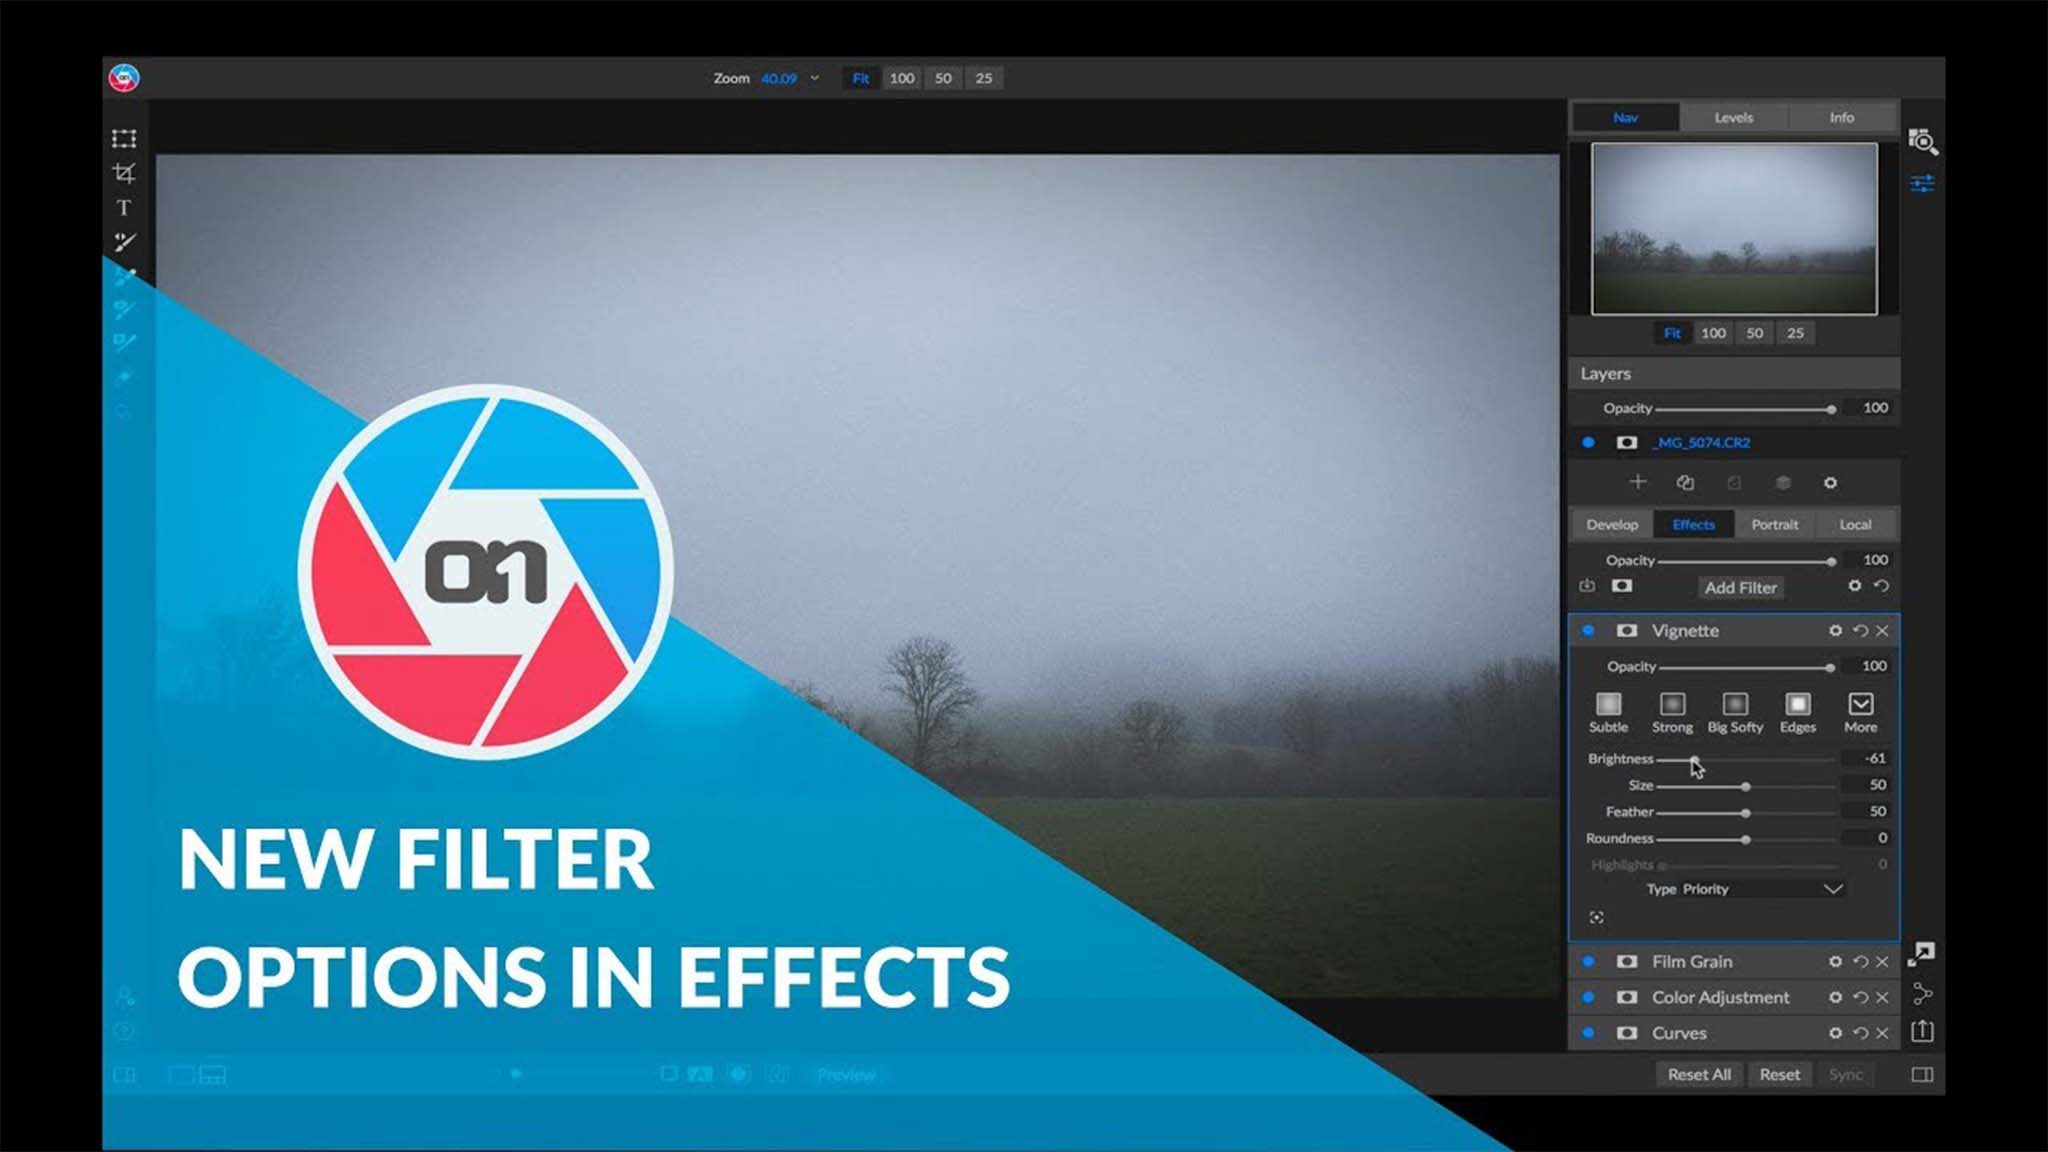 New Filter Options in Effects